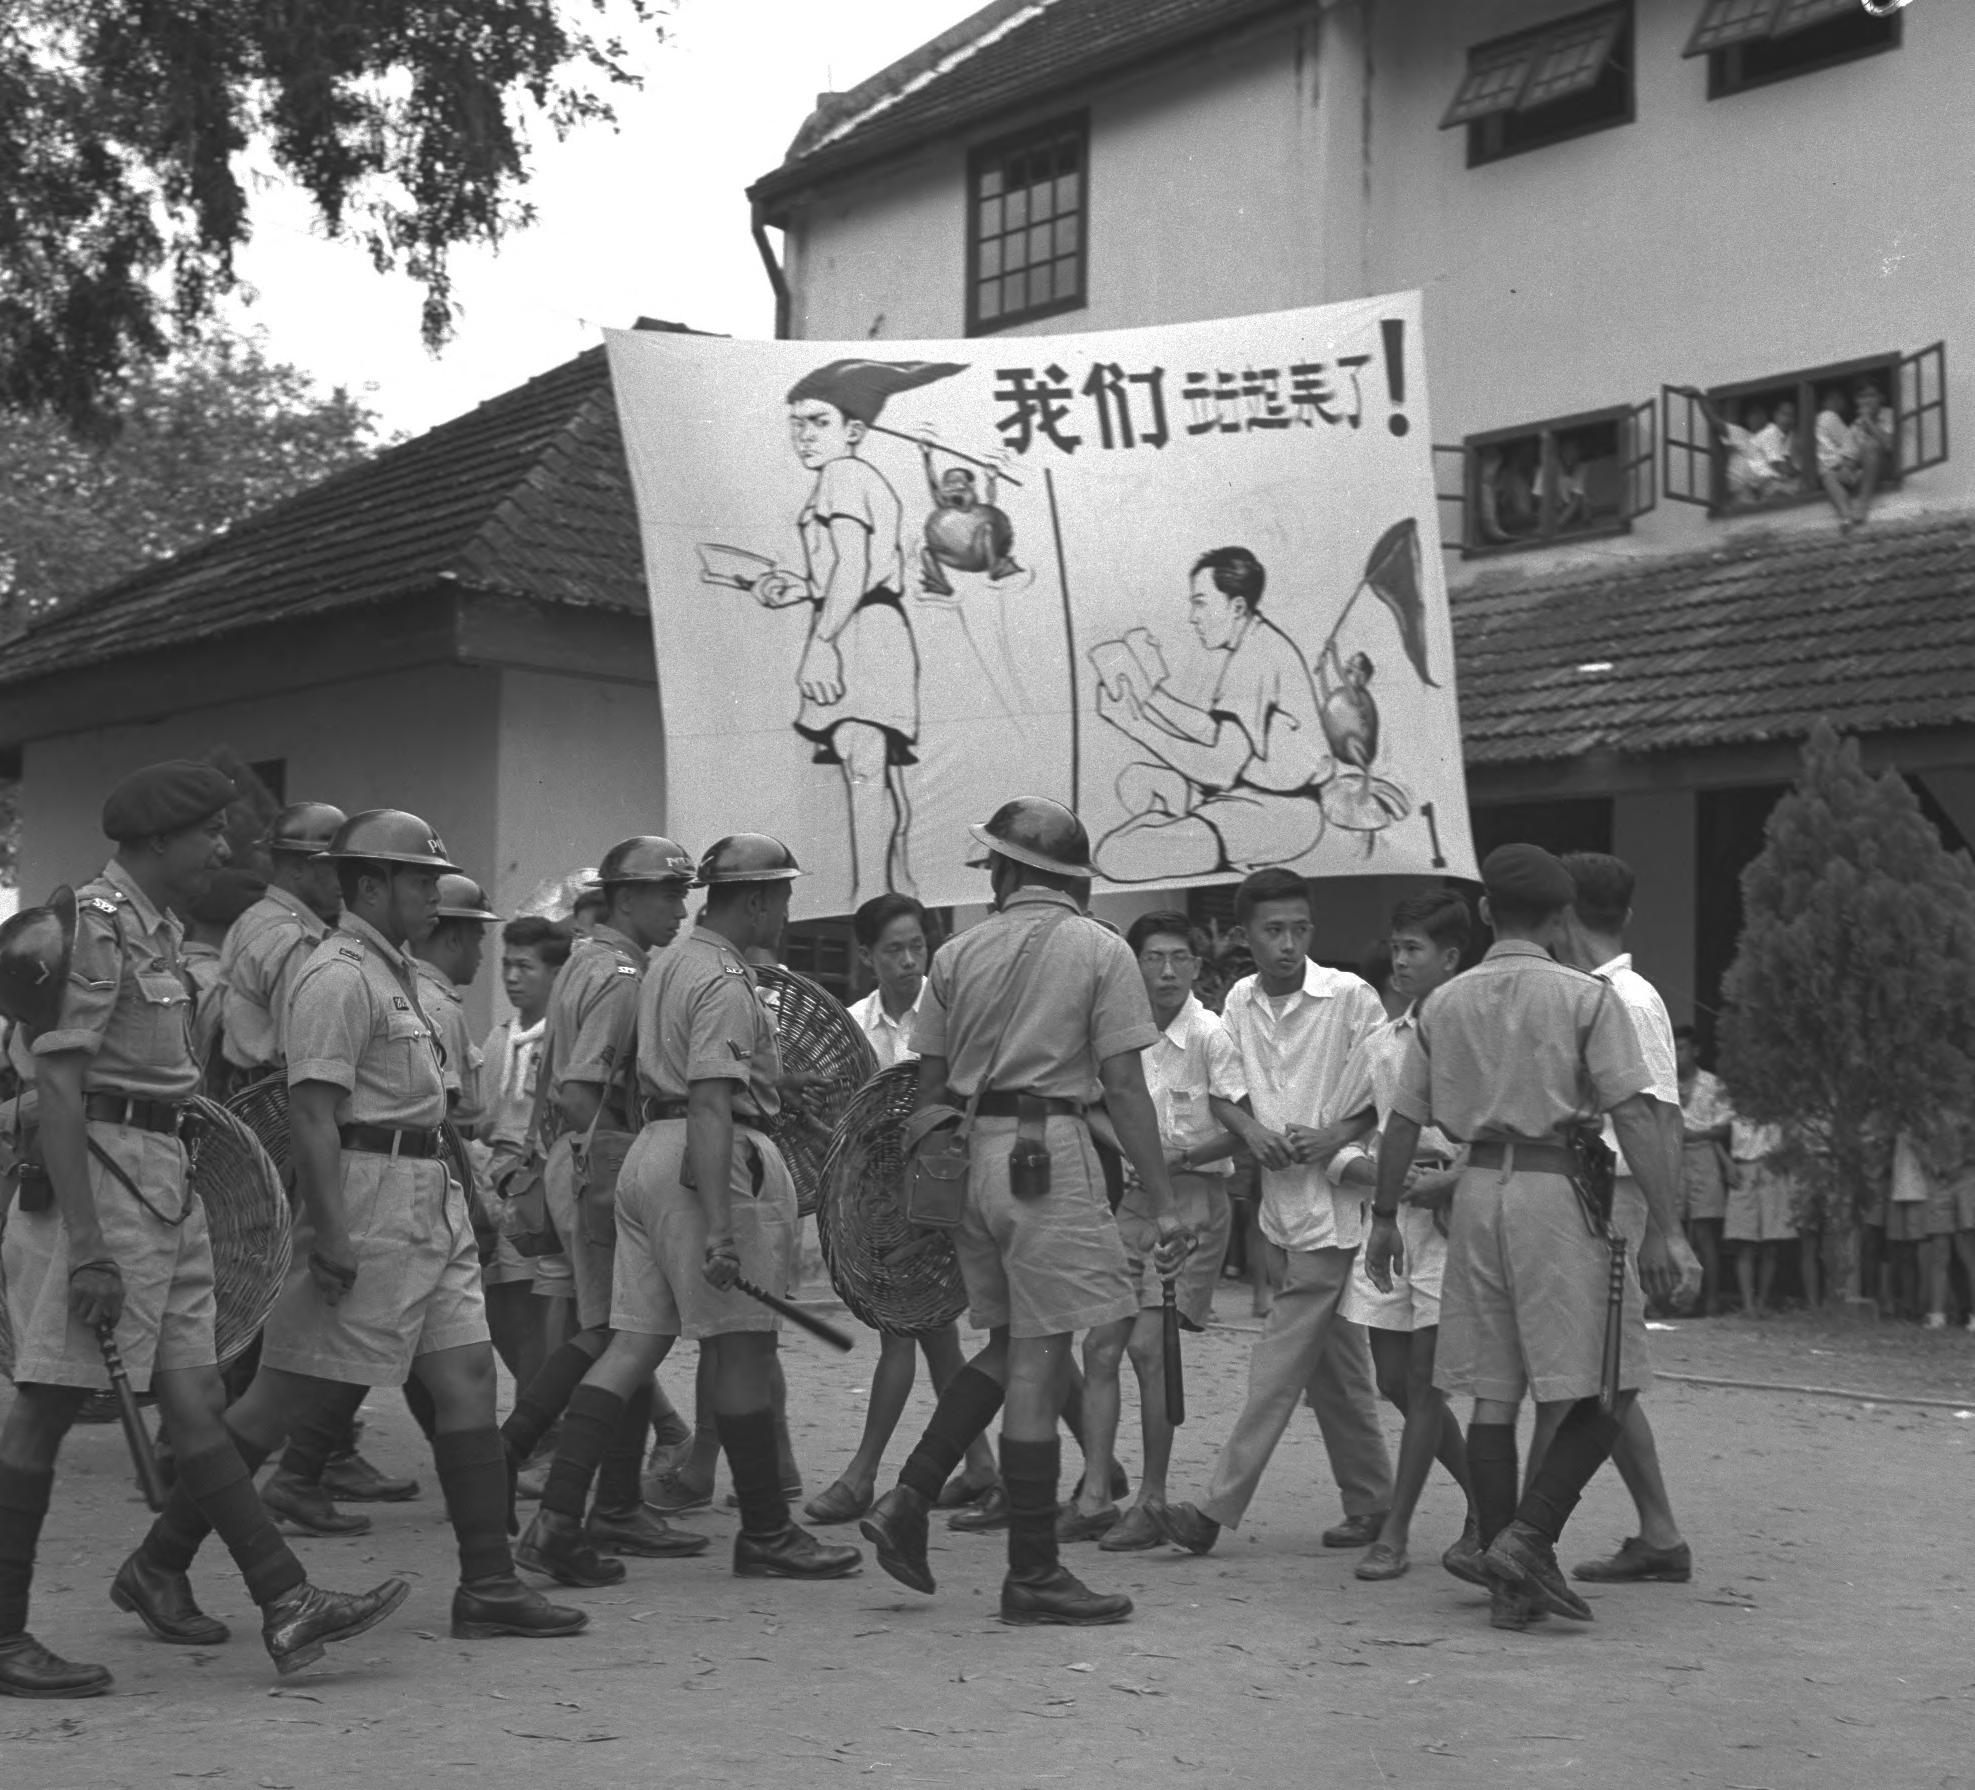 Archival Collections of Asia Photographs in Singapore's